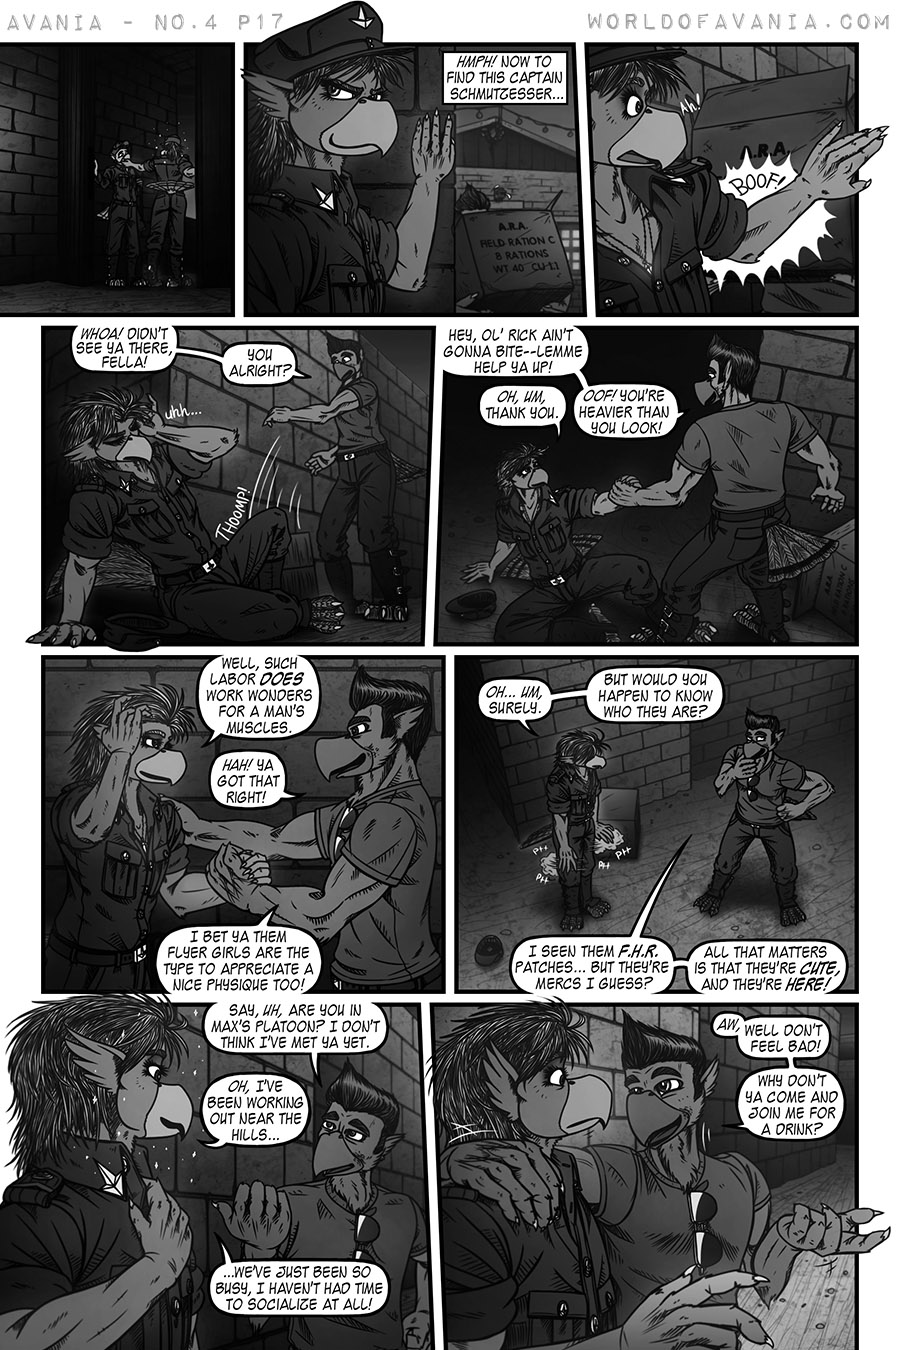 Avania Comic - Issue No.4, Page 17